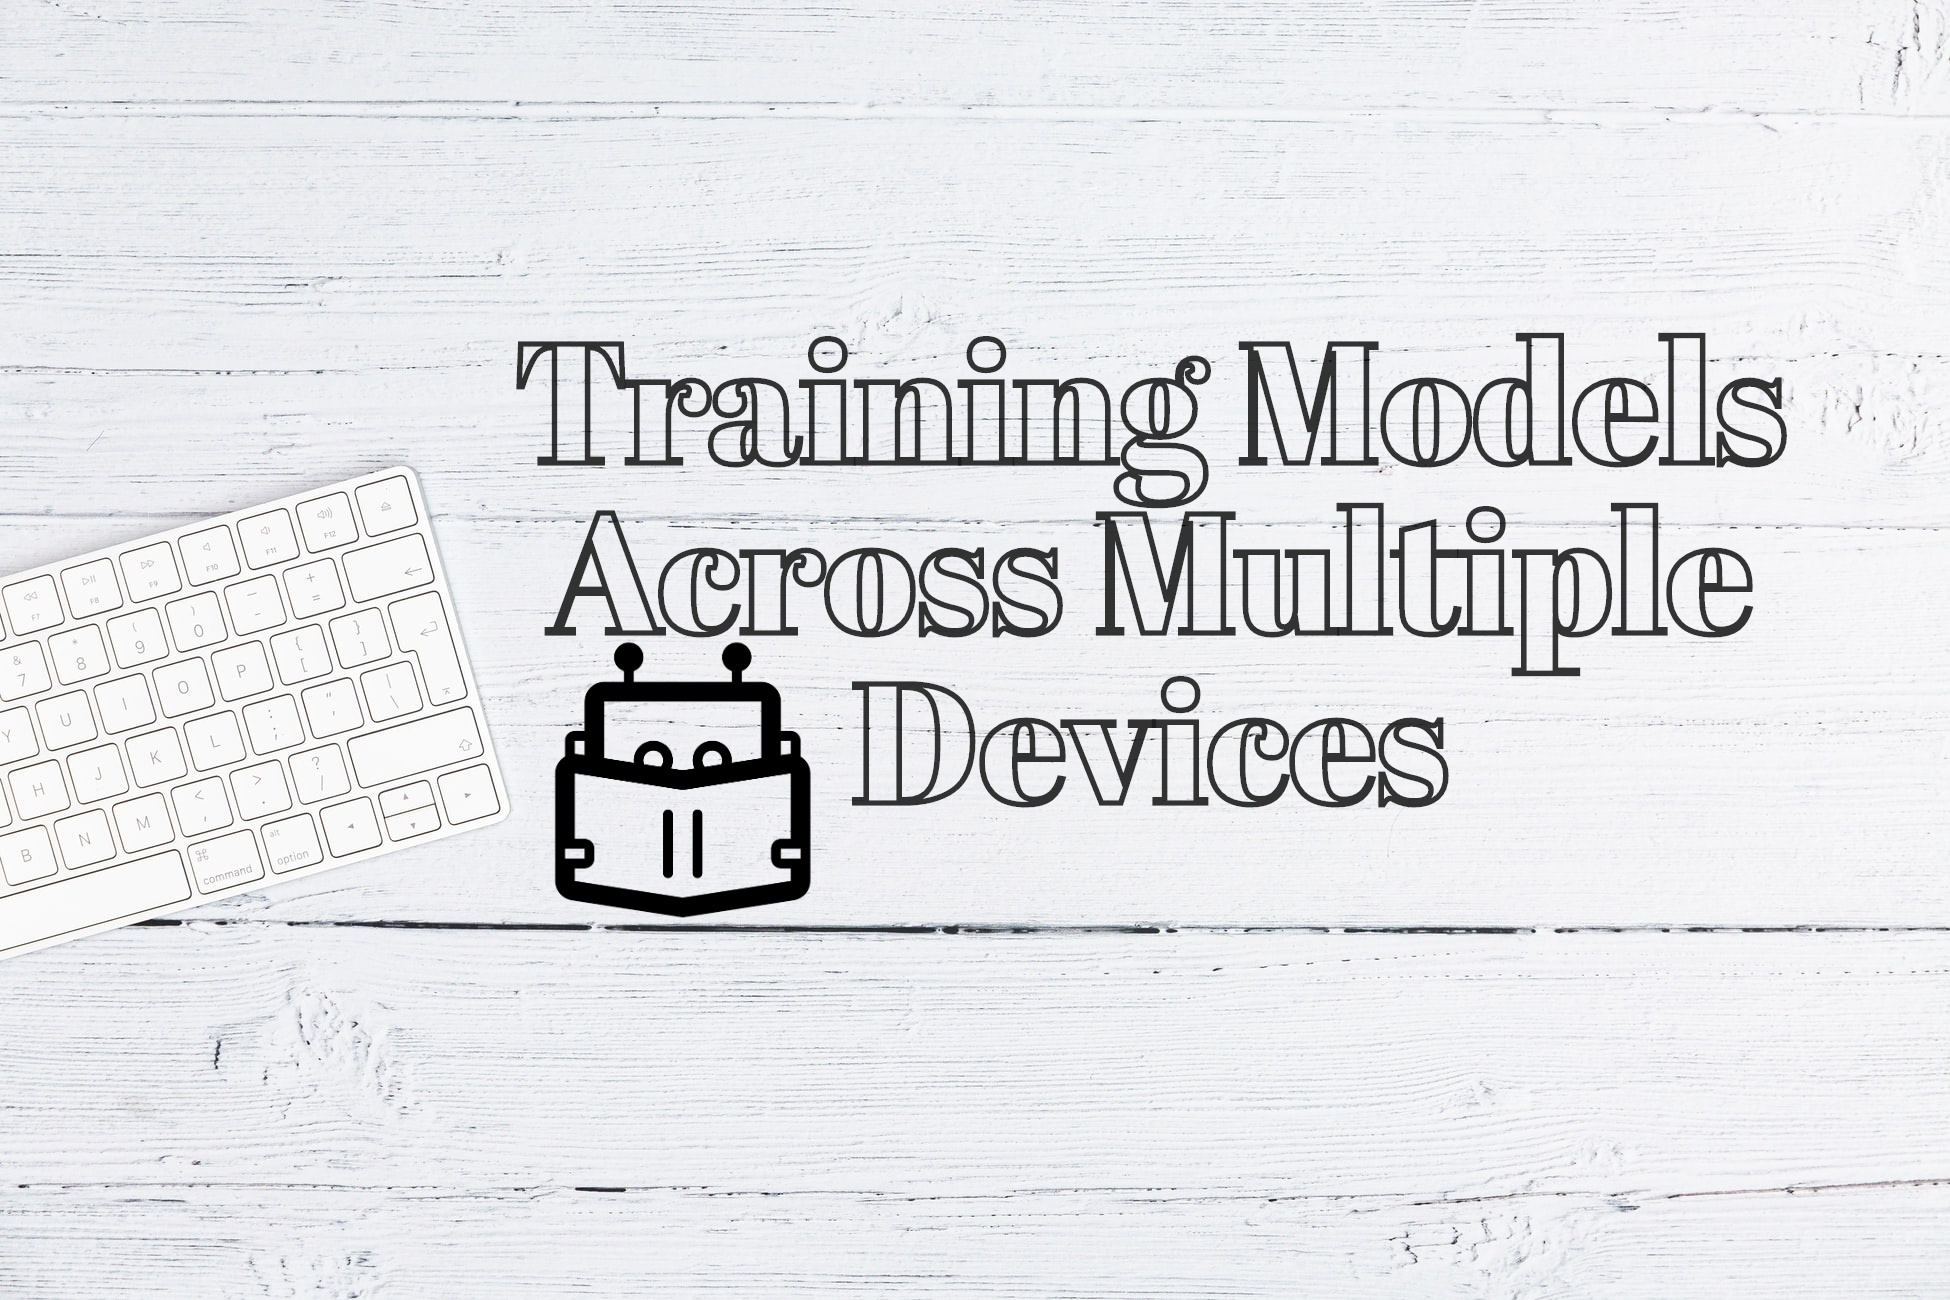 Training Models Across Multiple Devices